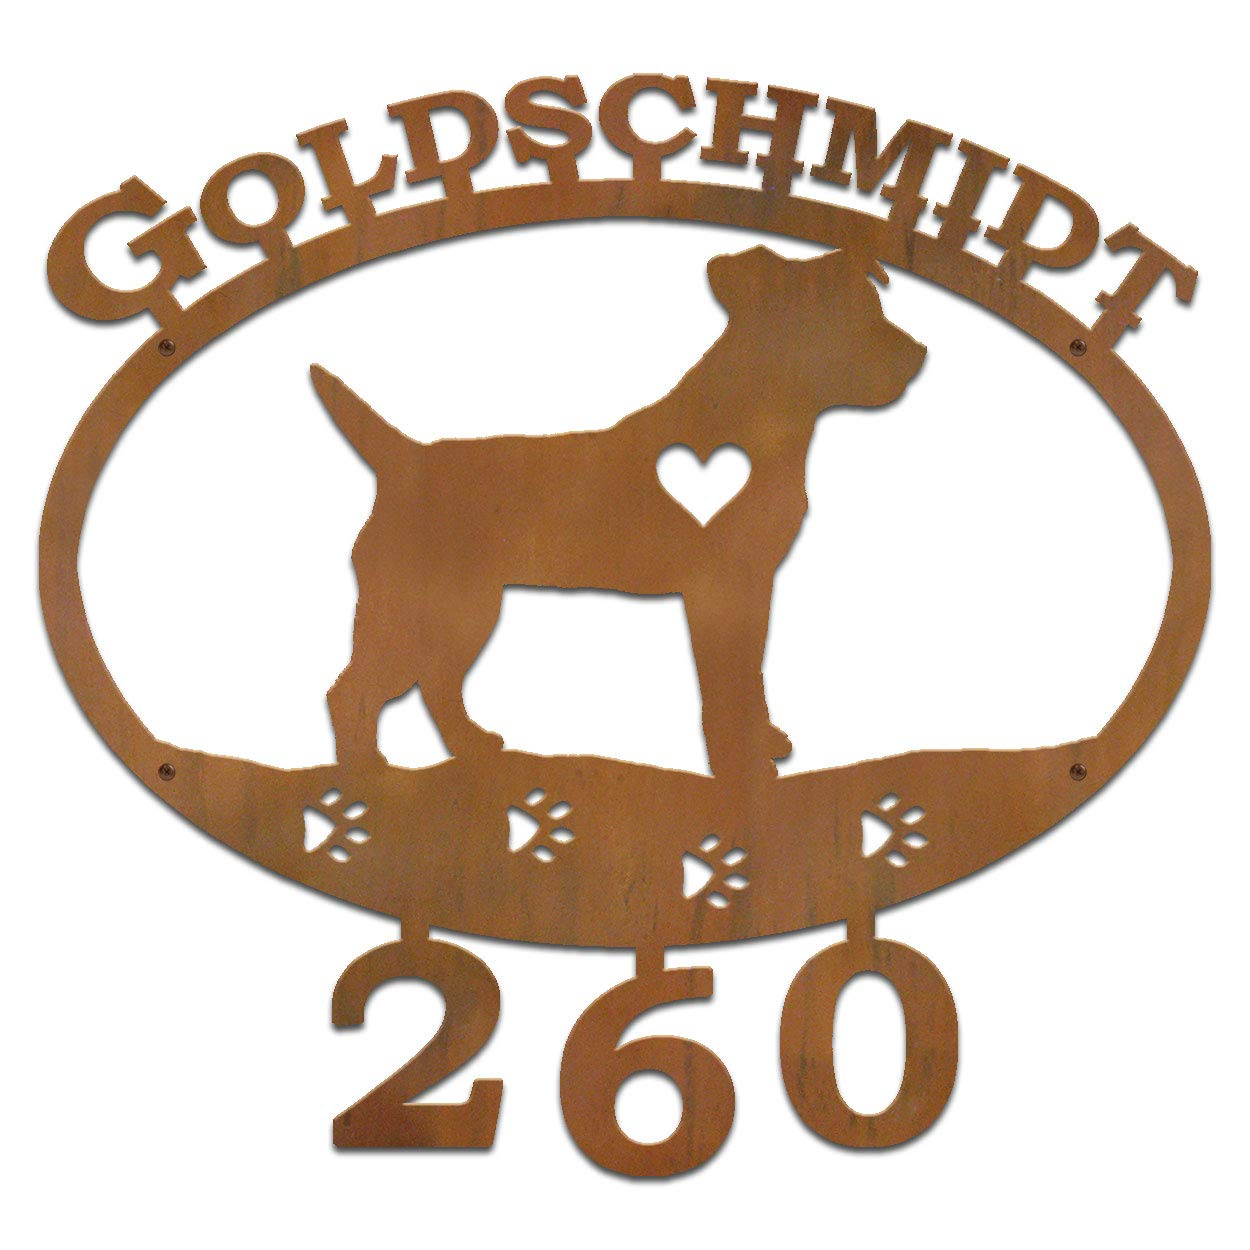 Cold Nose Creations Jack Russell Terrier Dog Breed 22in Oval Steel Custom Address Name and Numbers Sign - Rust Metal Finish - Made in USA